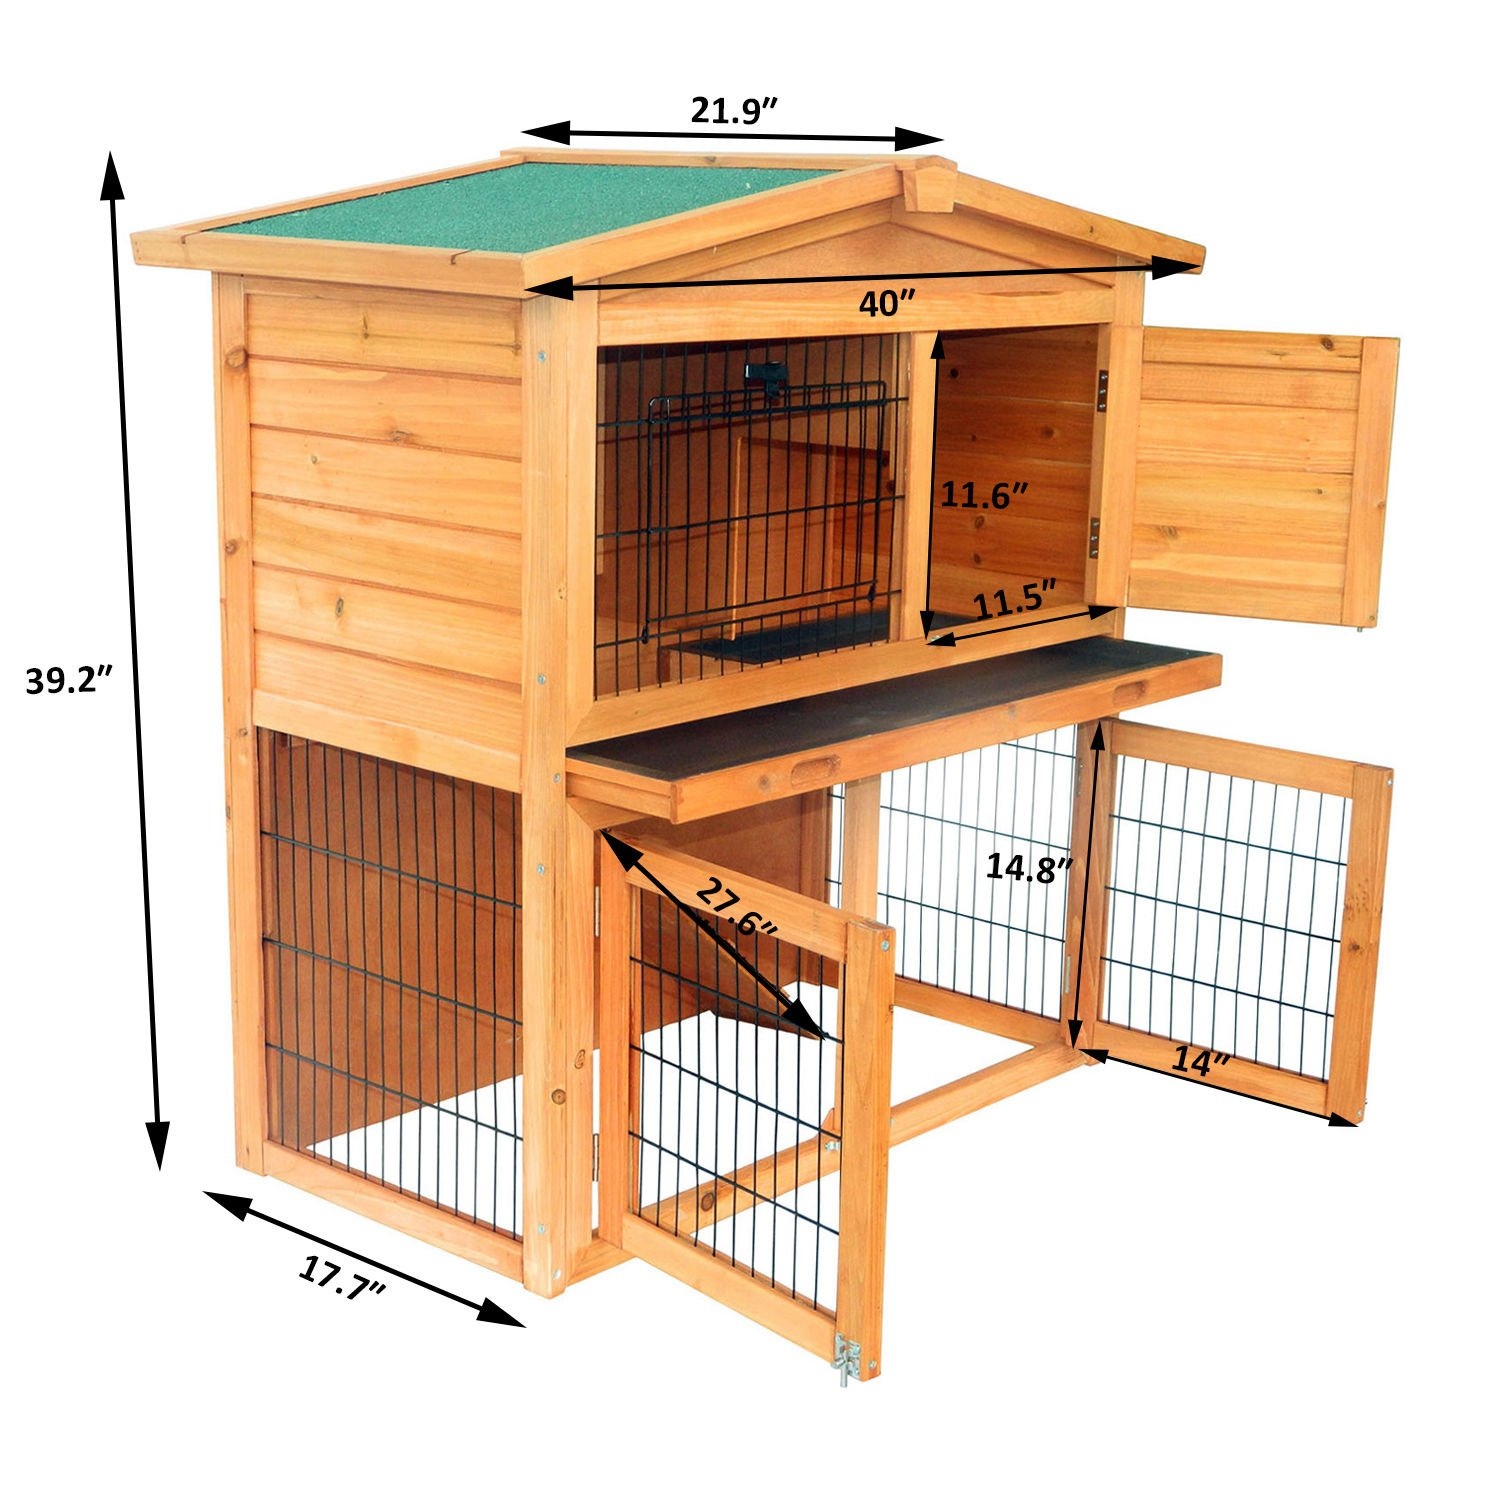 Wooden Rabbit Hutch Small Animal House Pet Cage Chicken Coop A-Frame 40''Pet Holds Cages Home - House Deals by House Deals (Image #2)